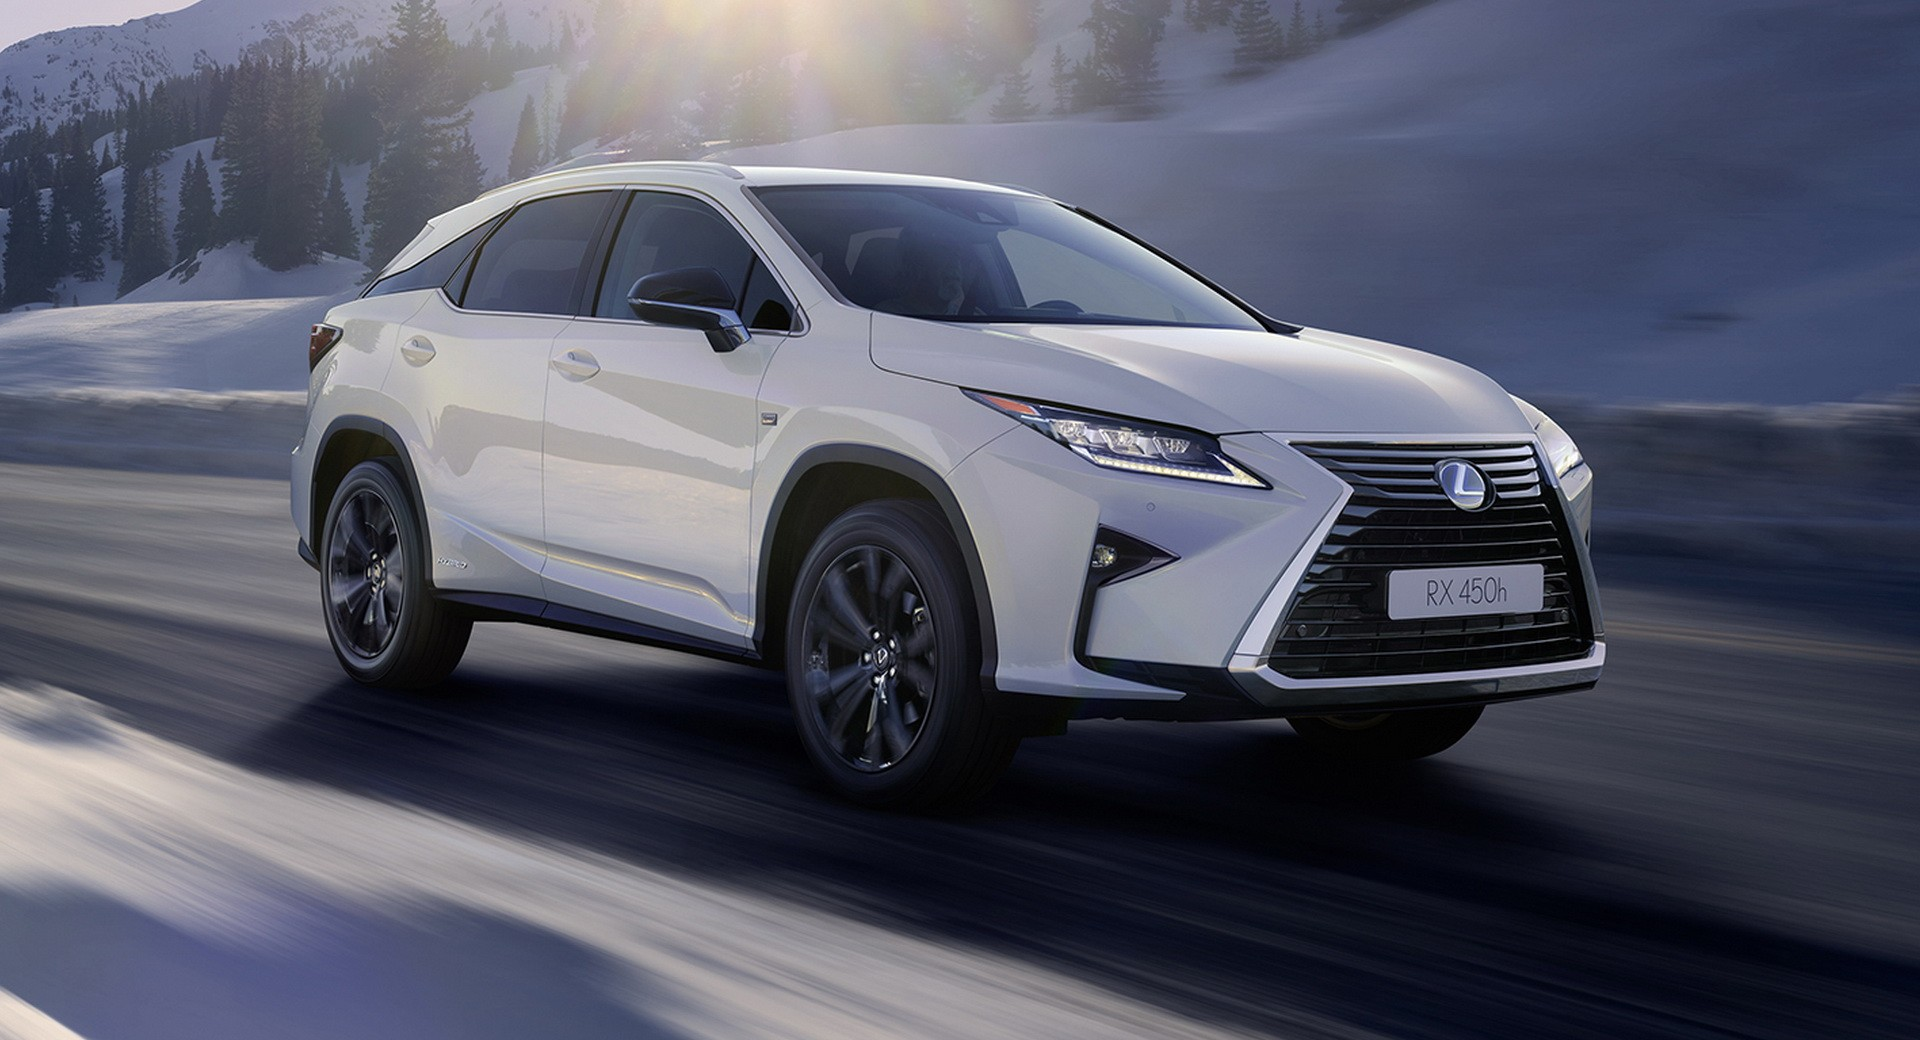 https://s1.cdn.autoevolution.com/images/news/gallery/lexus-rx-450h-sport-edition-launched-in-britain_7.jpg